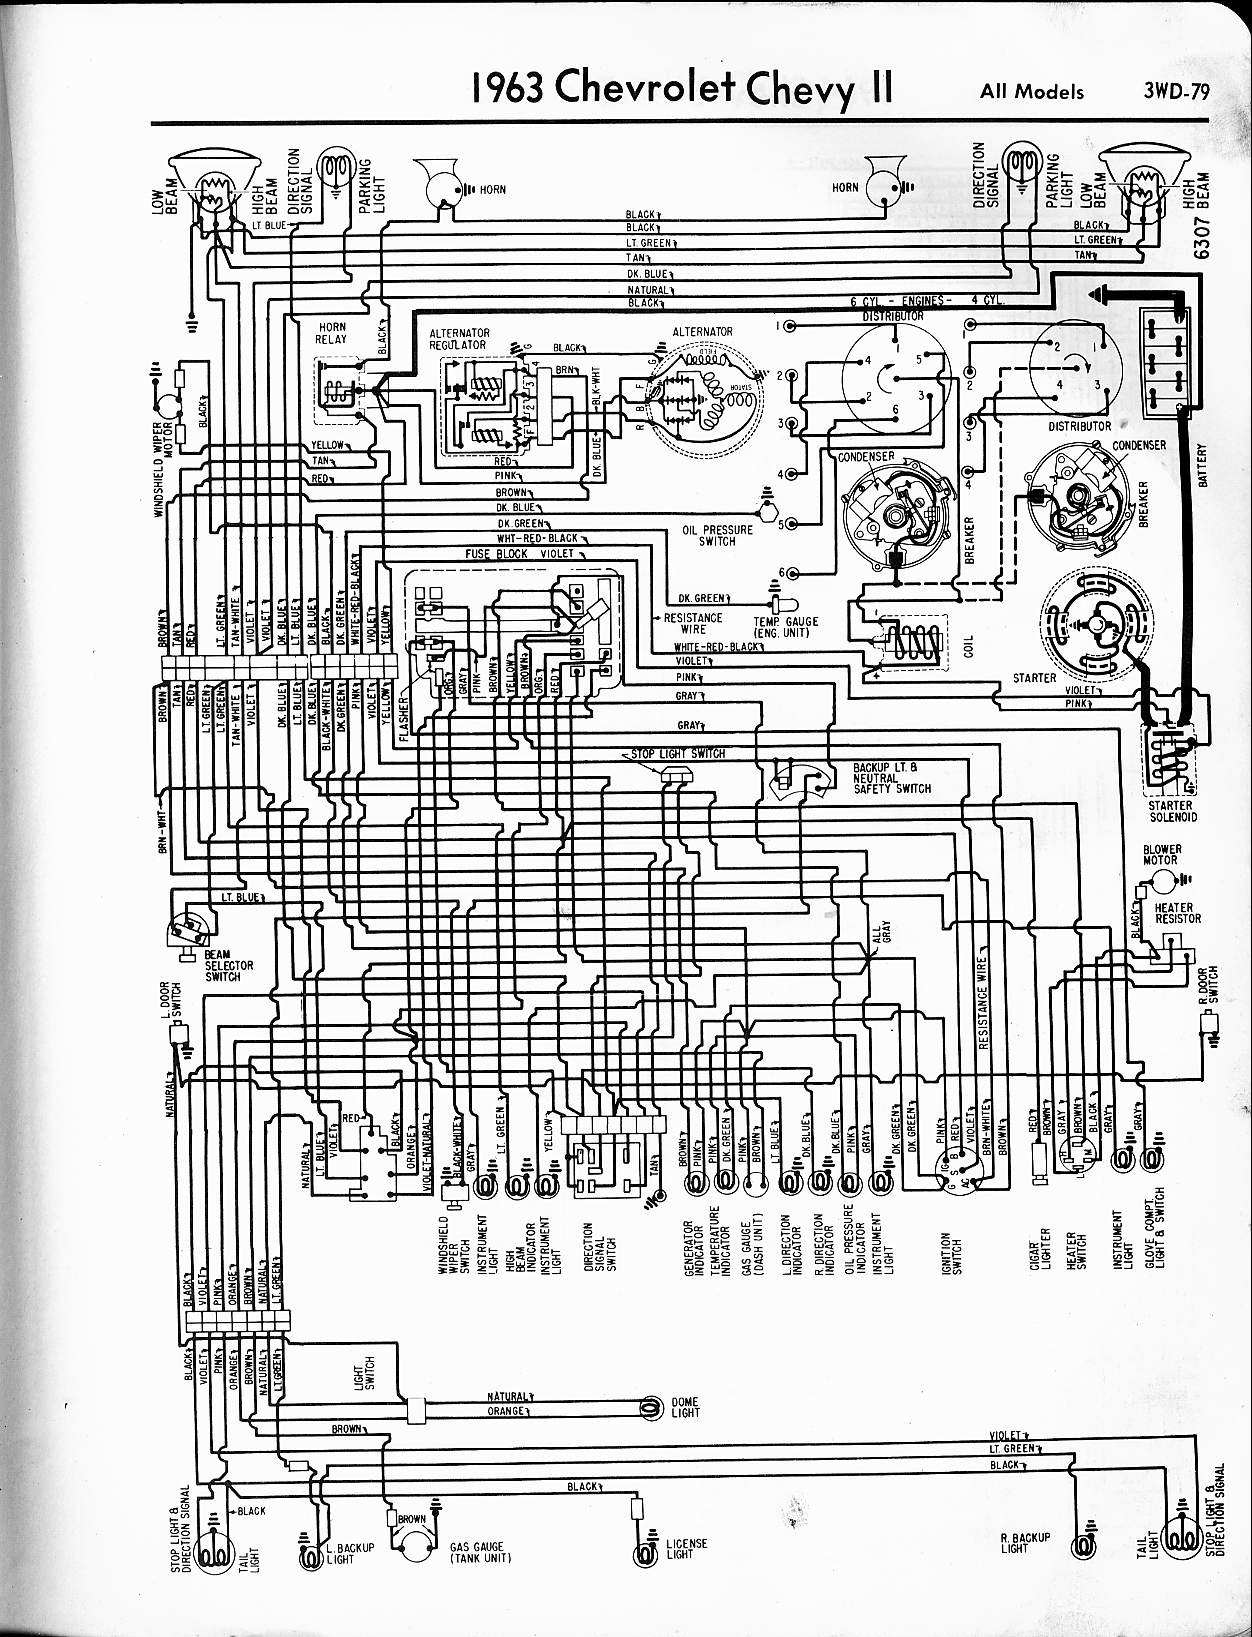 MWireChev63_3WD 079 wiring diagrams chevy truck 1962 the wiring diagram readingrat net 69 Nova Ignition Switch Diagram at crackthecode.co